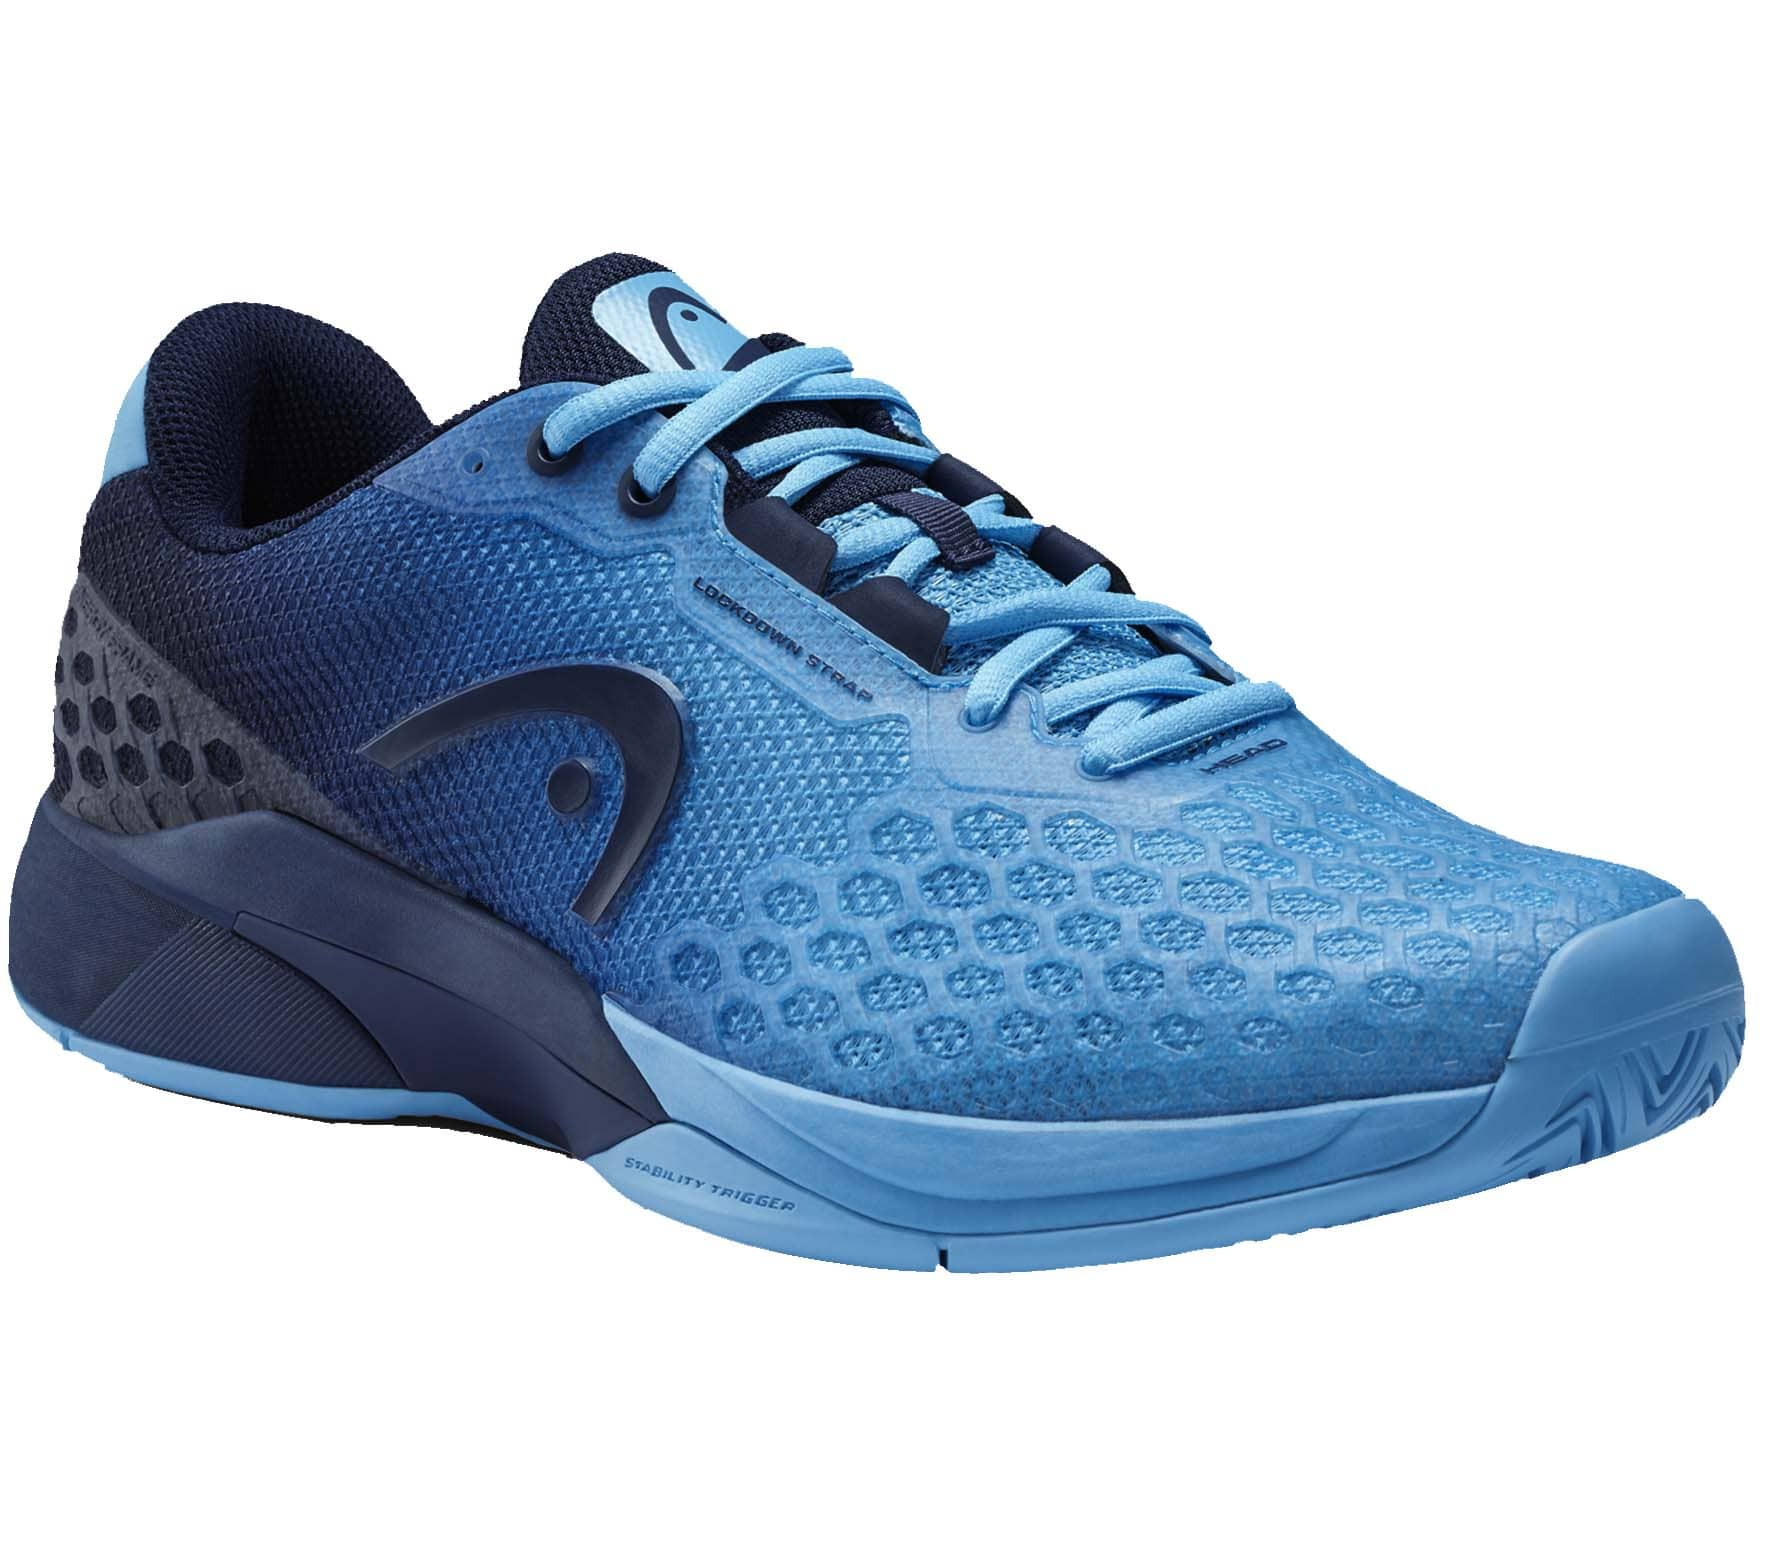 Revolt Pro 3.0 Men Tennis Shoes